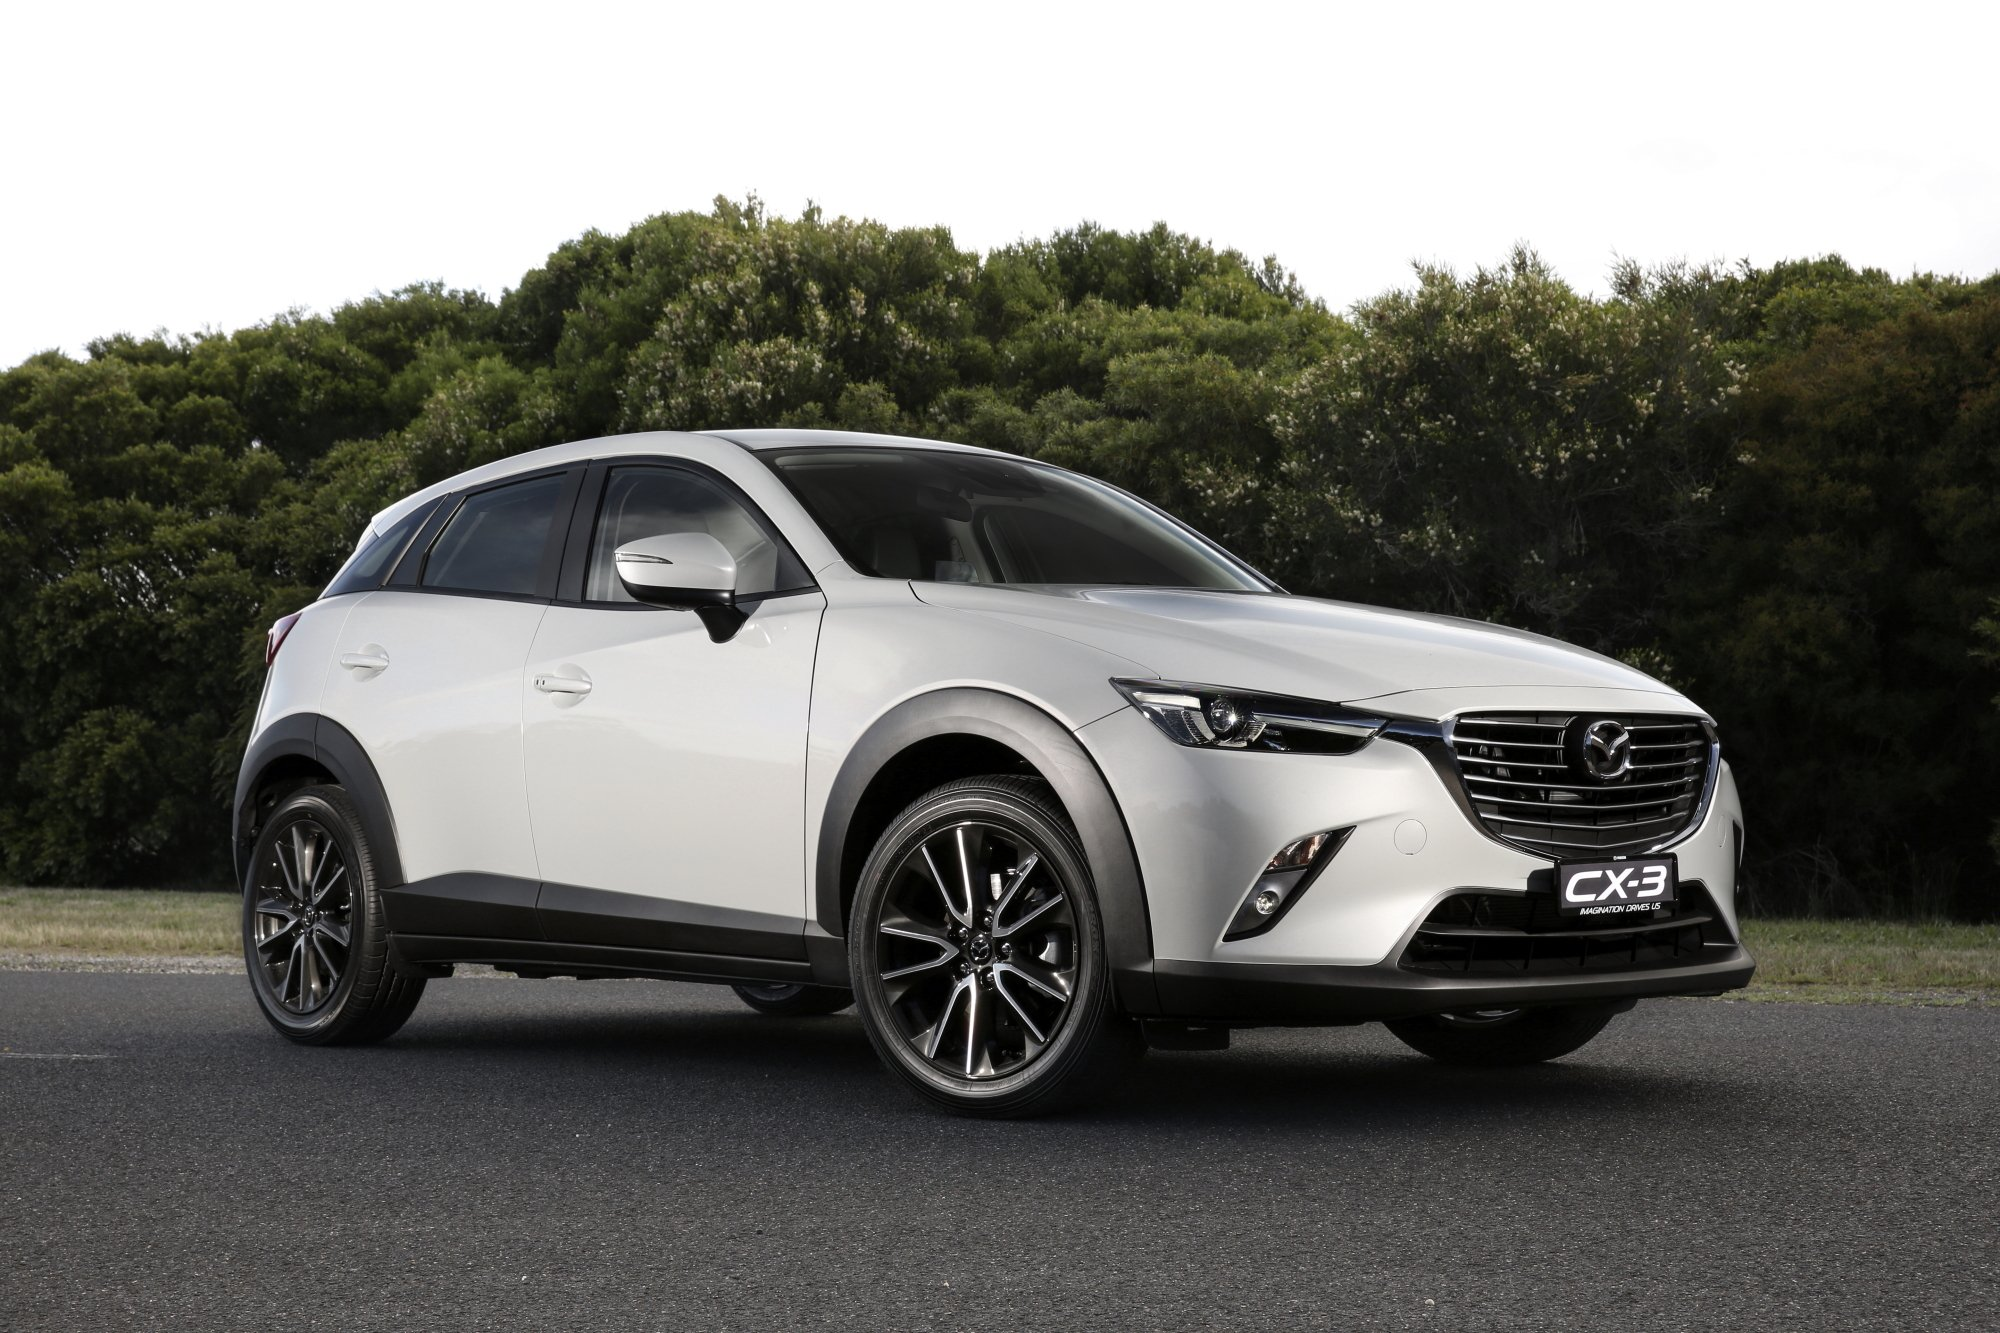 Latest Reviews For 2014 Or 2015 Mazda Cx 5 | Autos Post